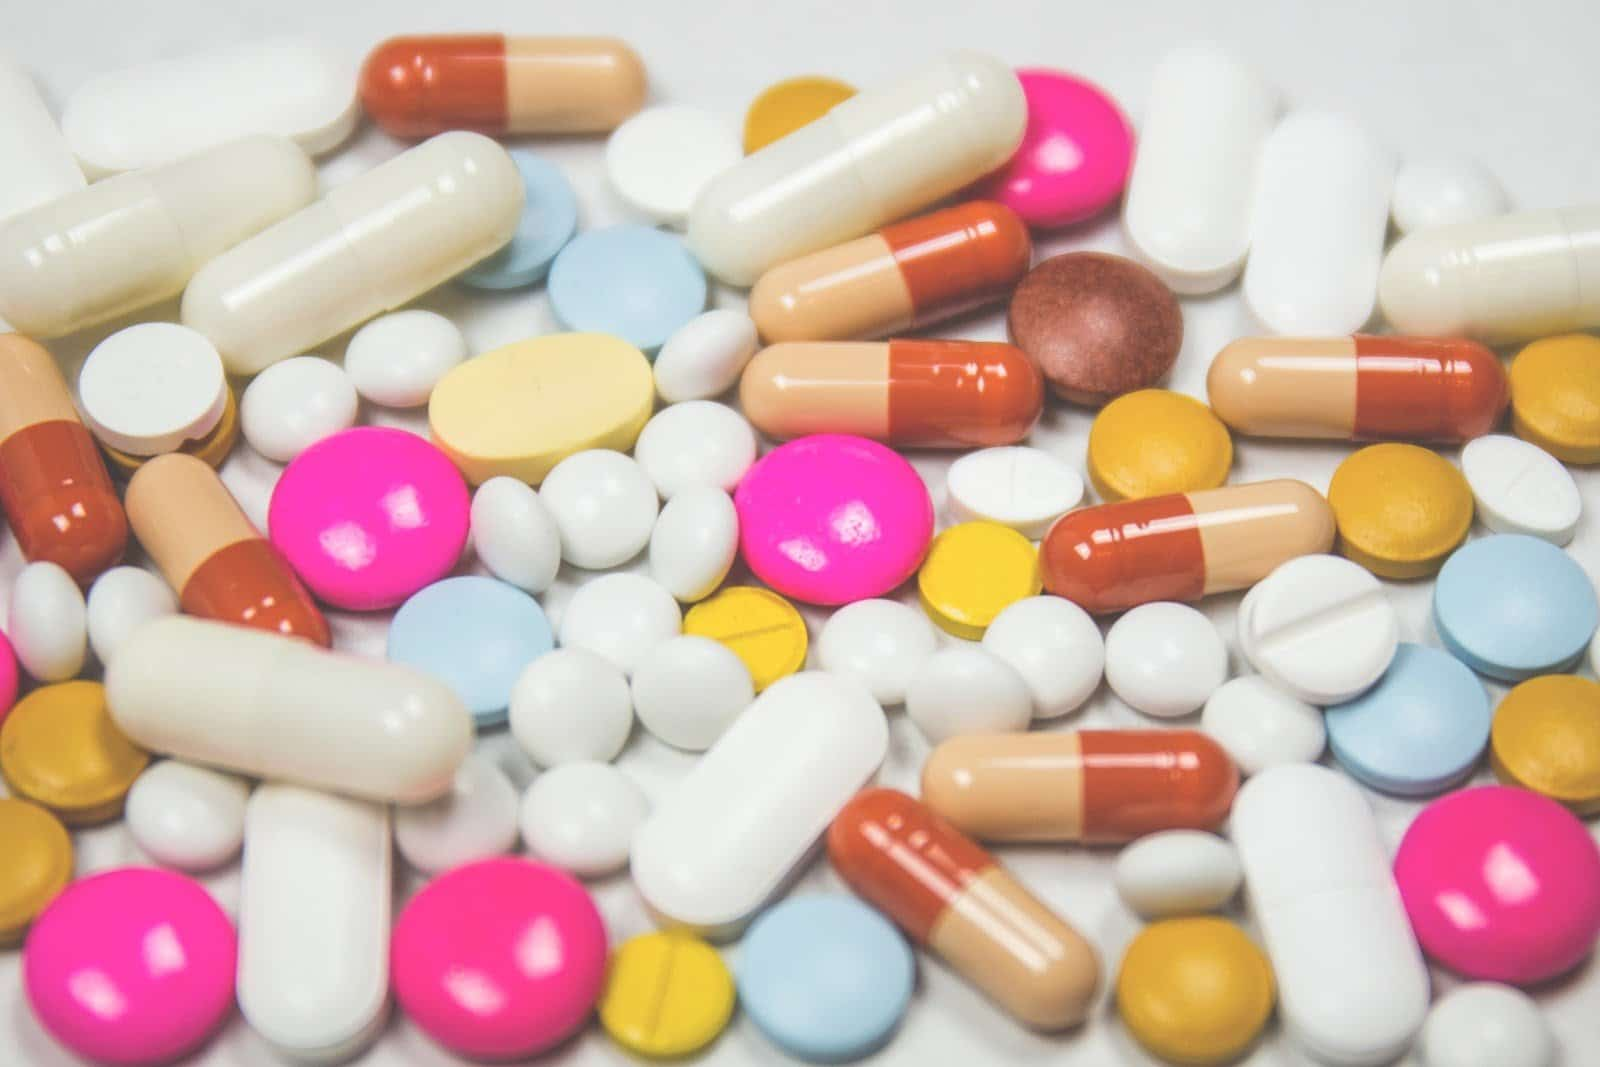 various-pills-and-capsules-of-different-sizes-and-colors